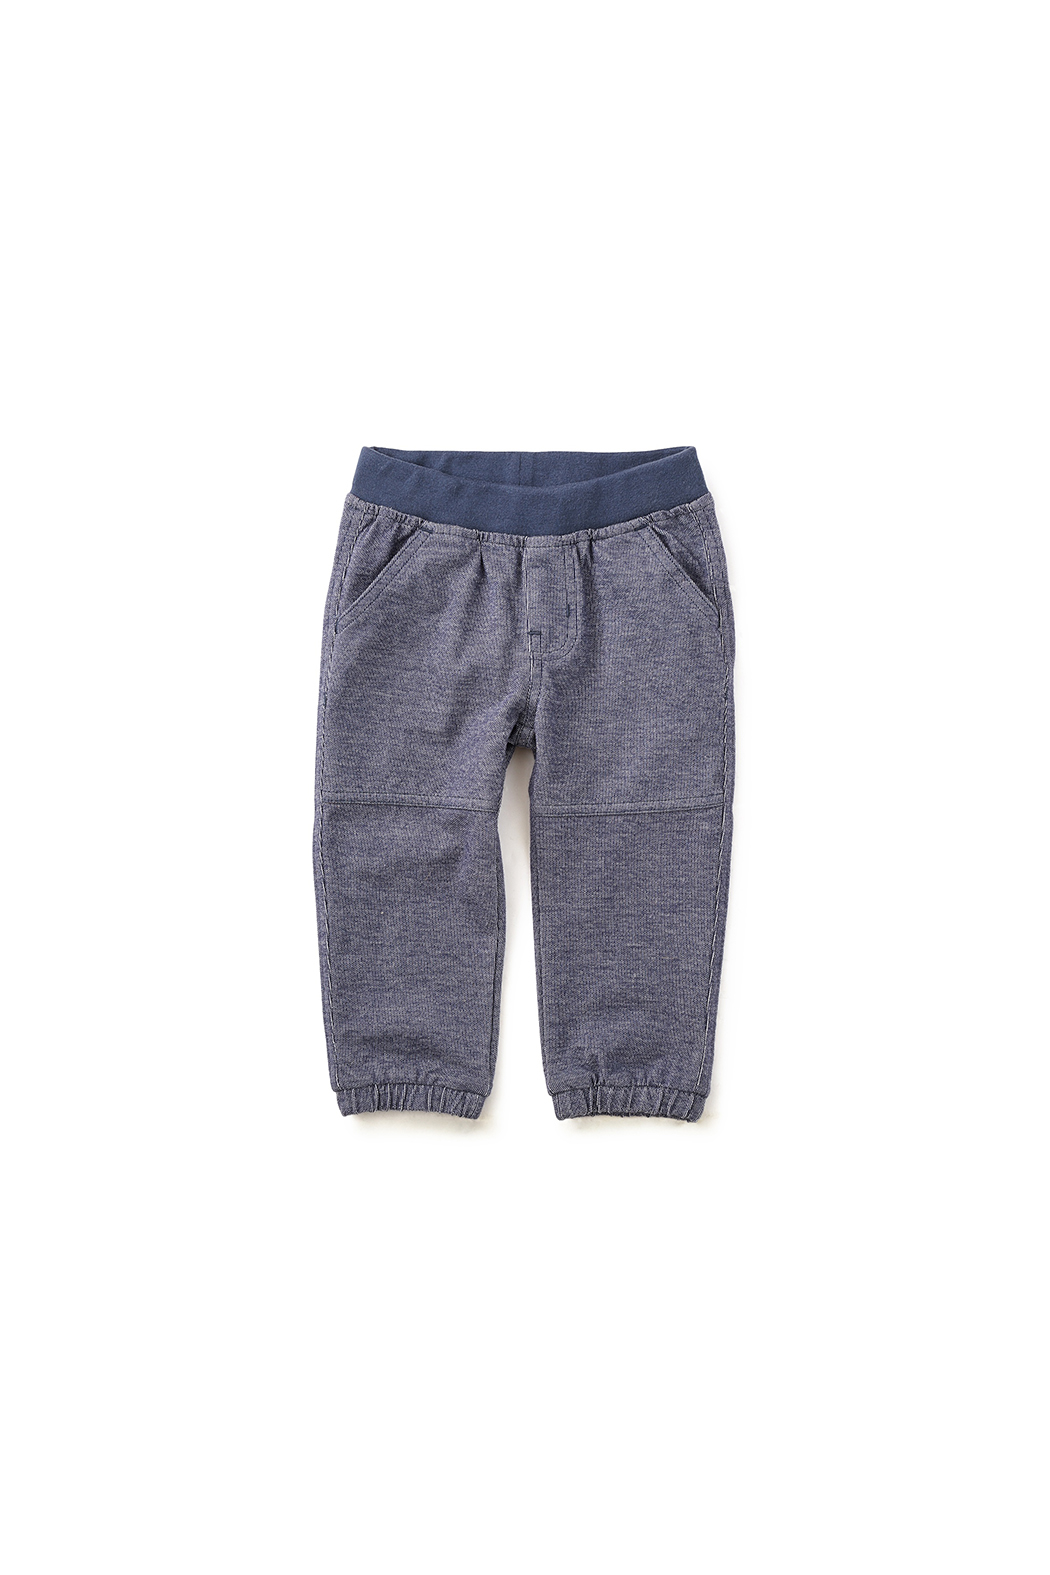 Tea Collection Denim Like Baby Pants - Main Image